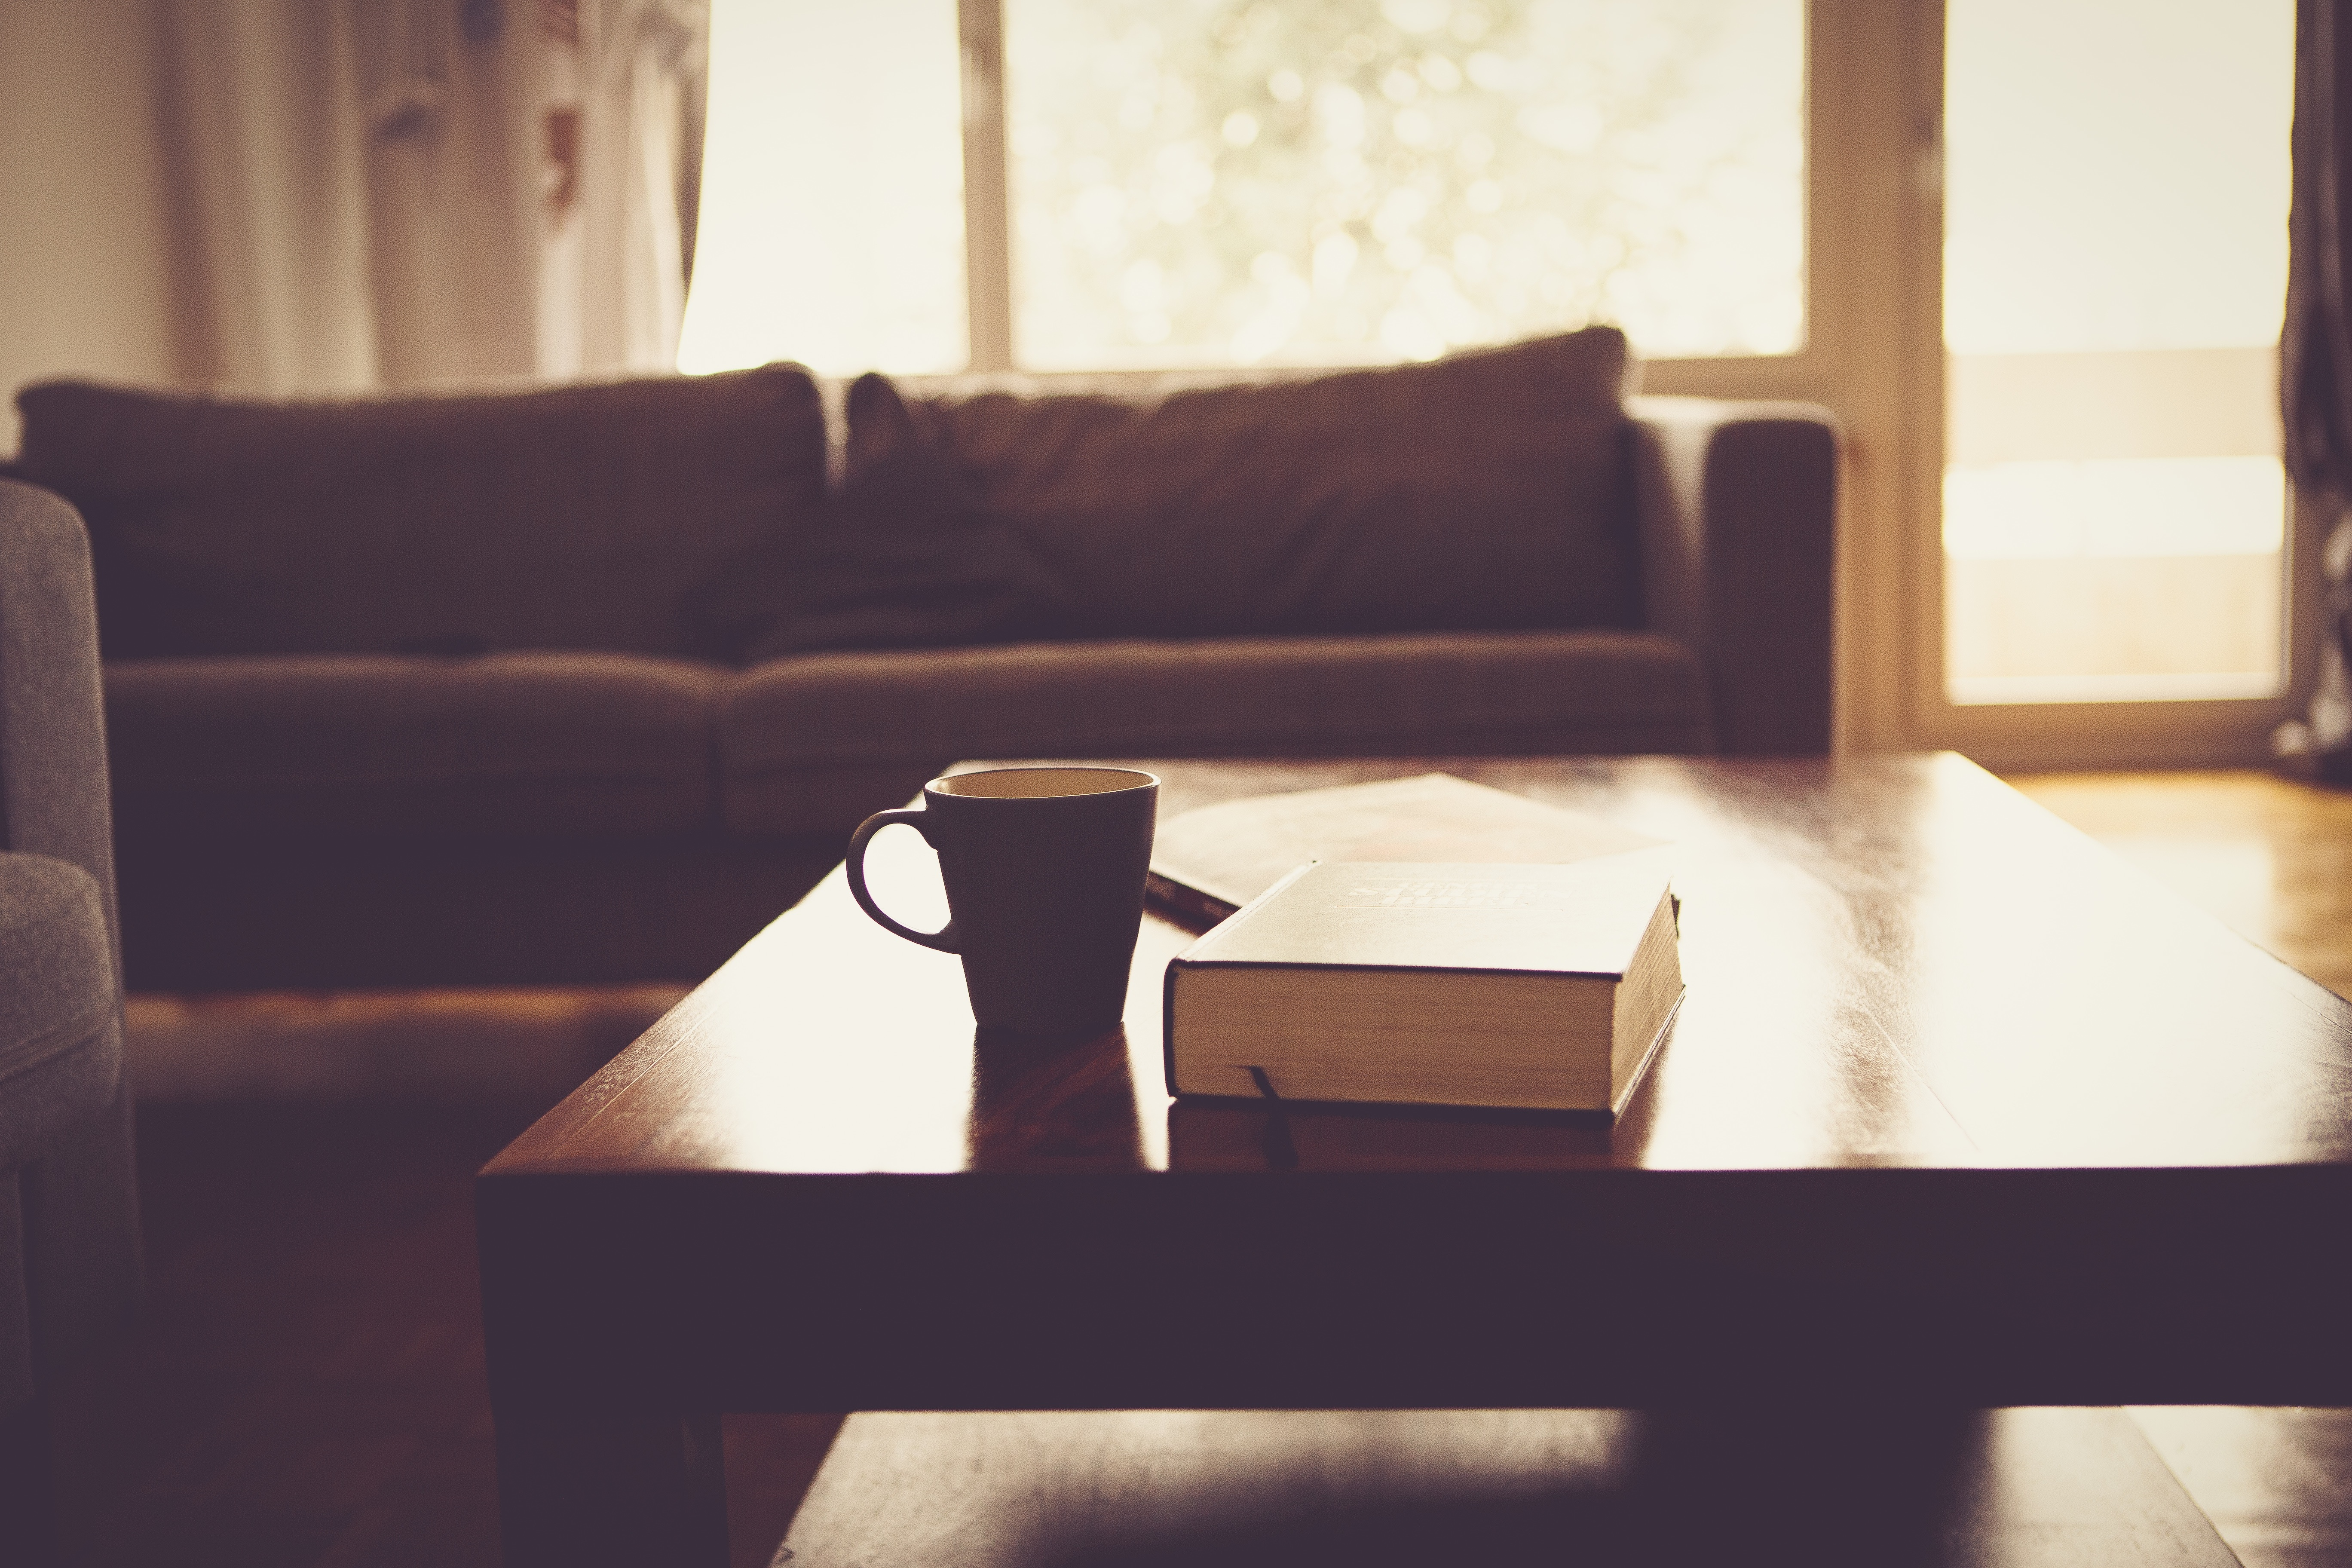 living room and book with coffee cup jpeg